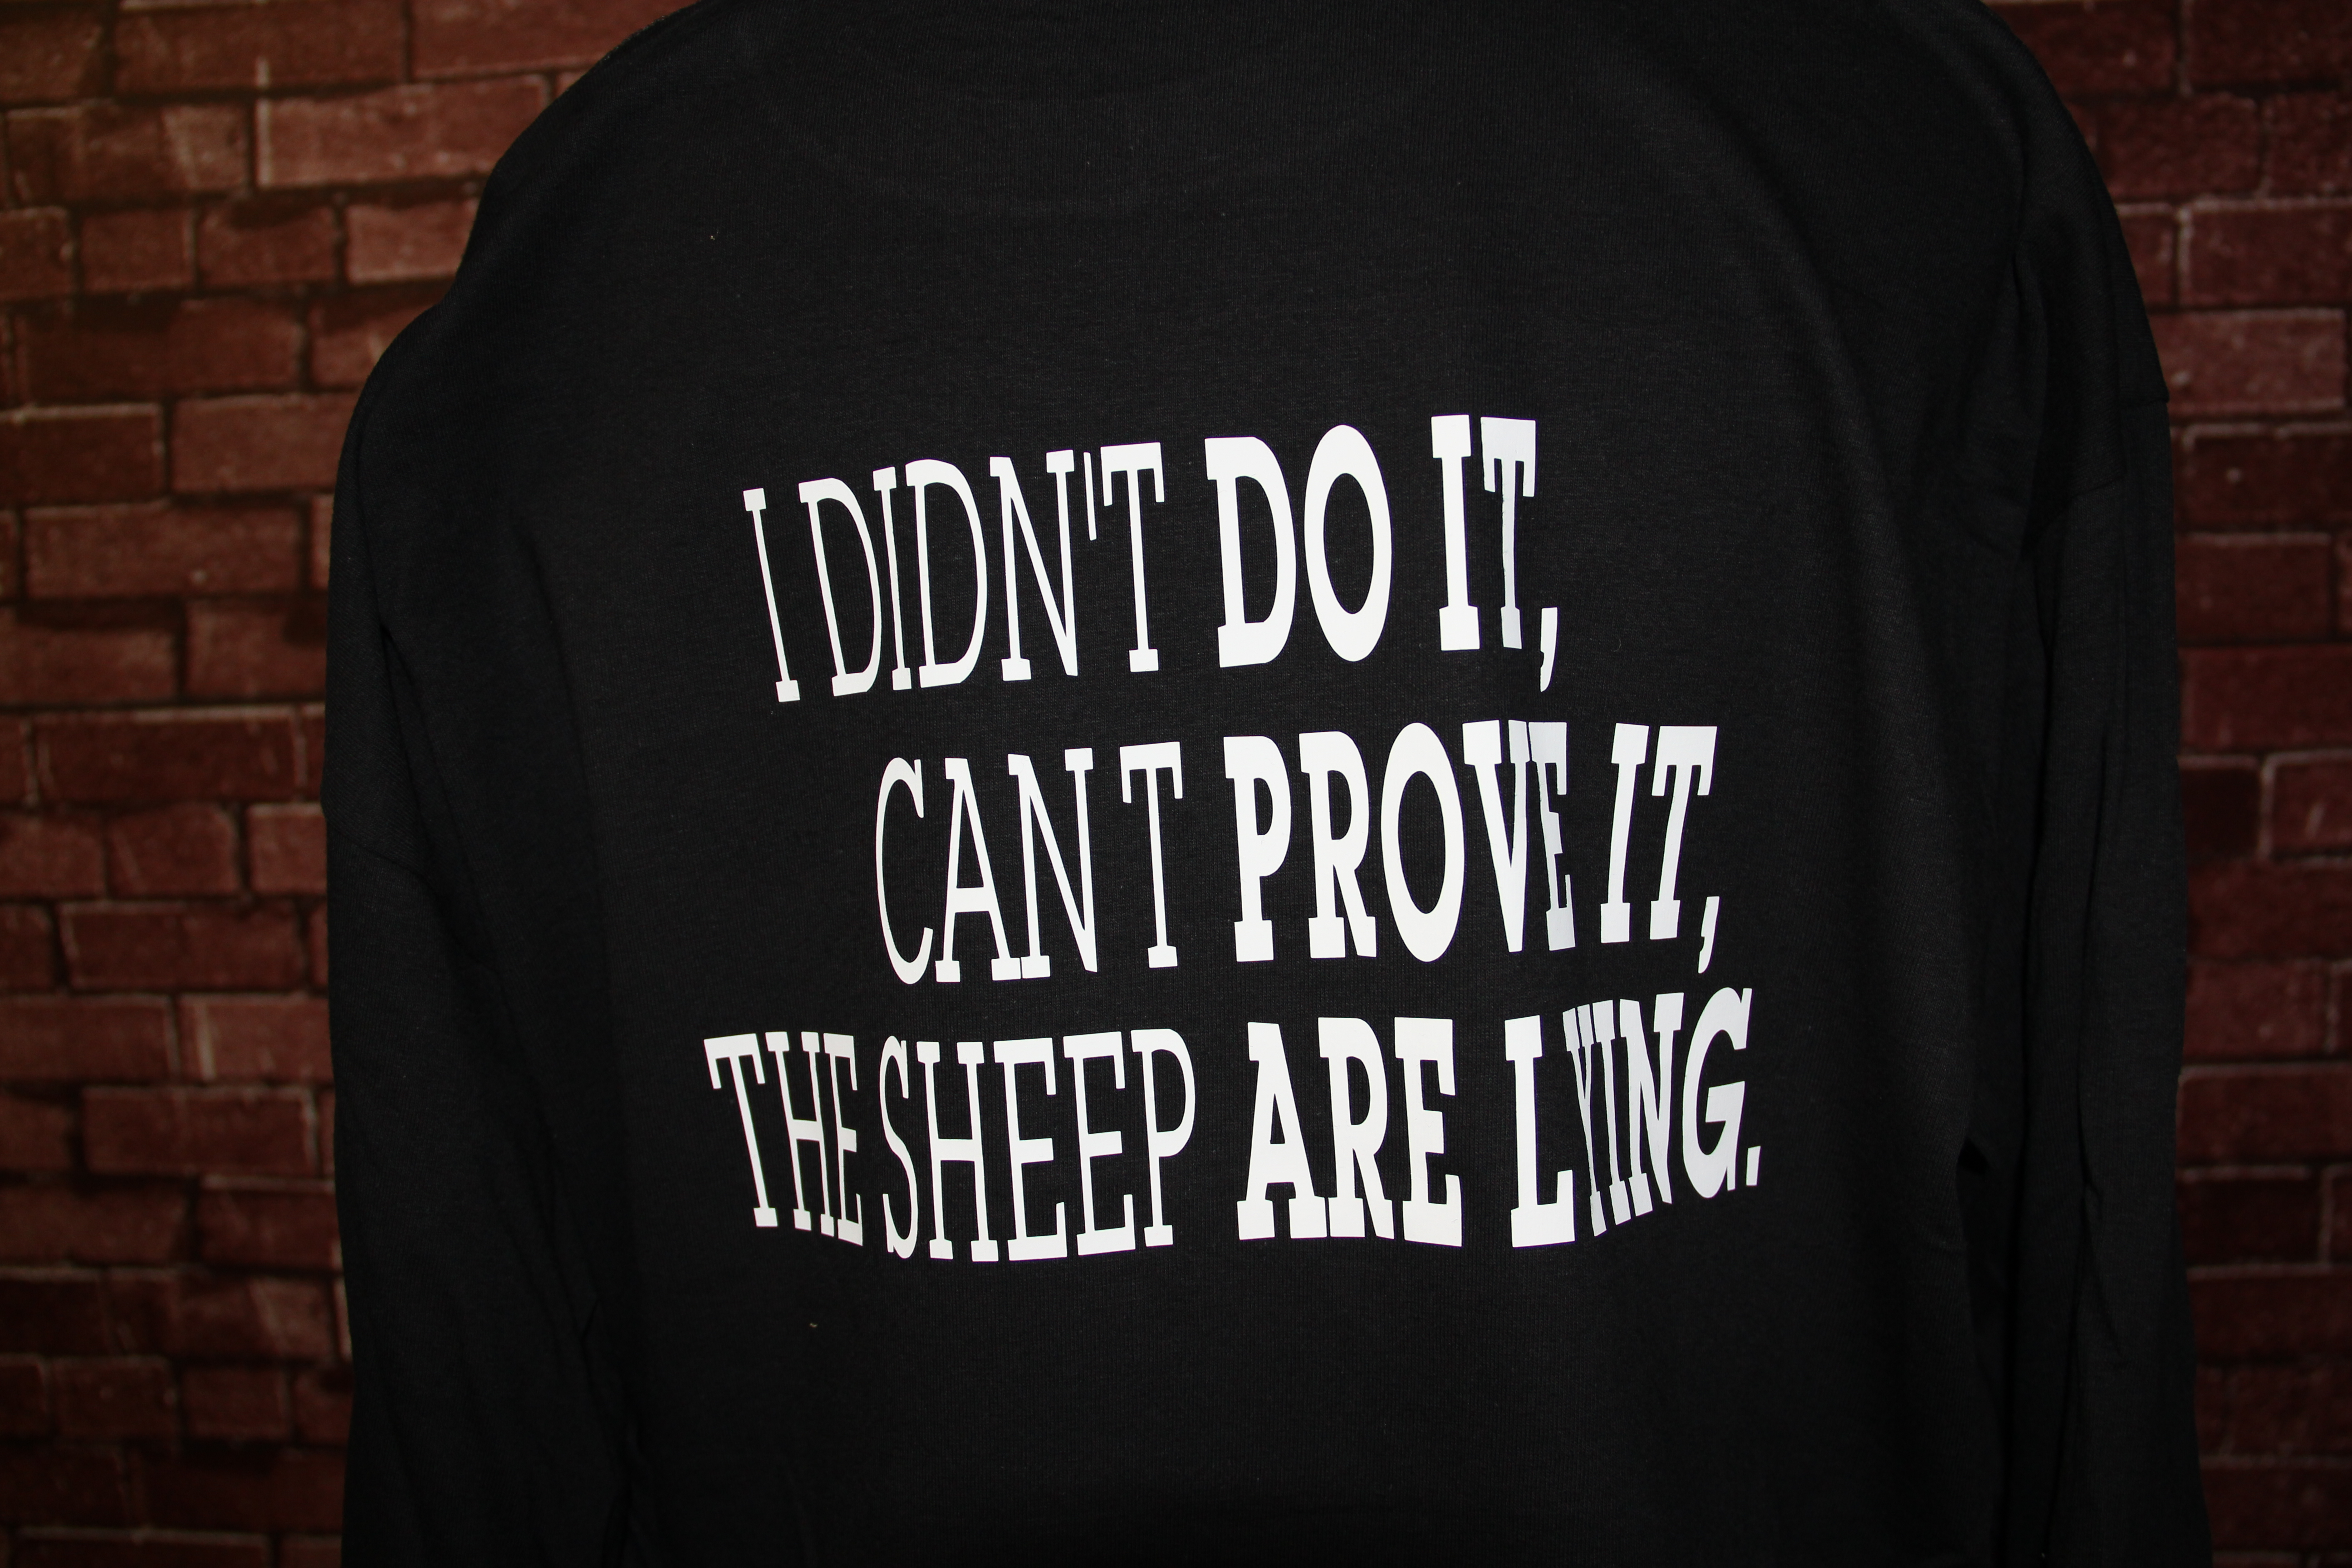 i-didn-t-do-it-you-can-t-prove-it-the-sheep-are-lying.jpg